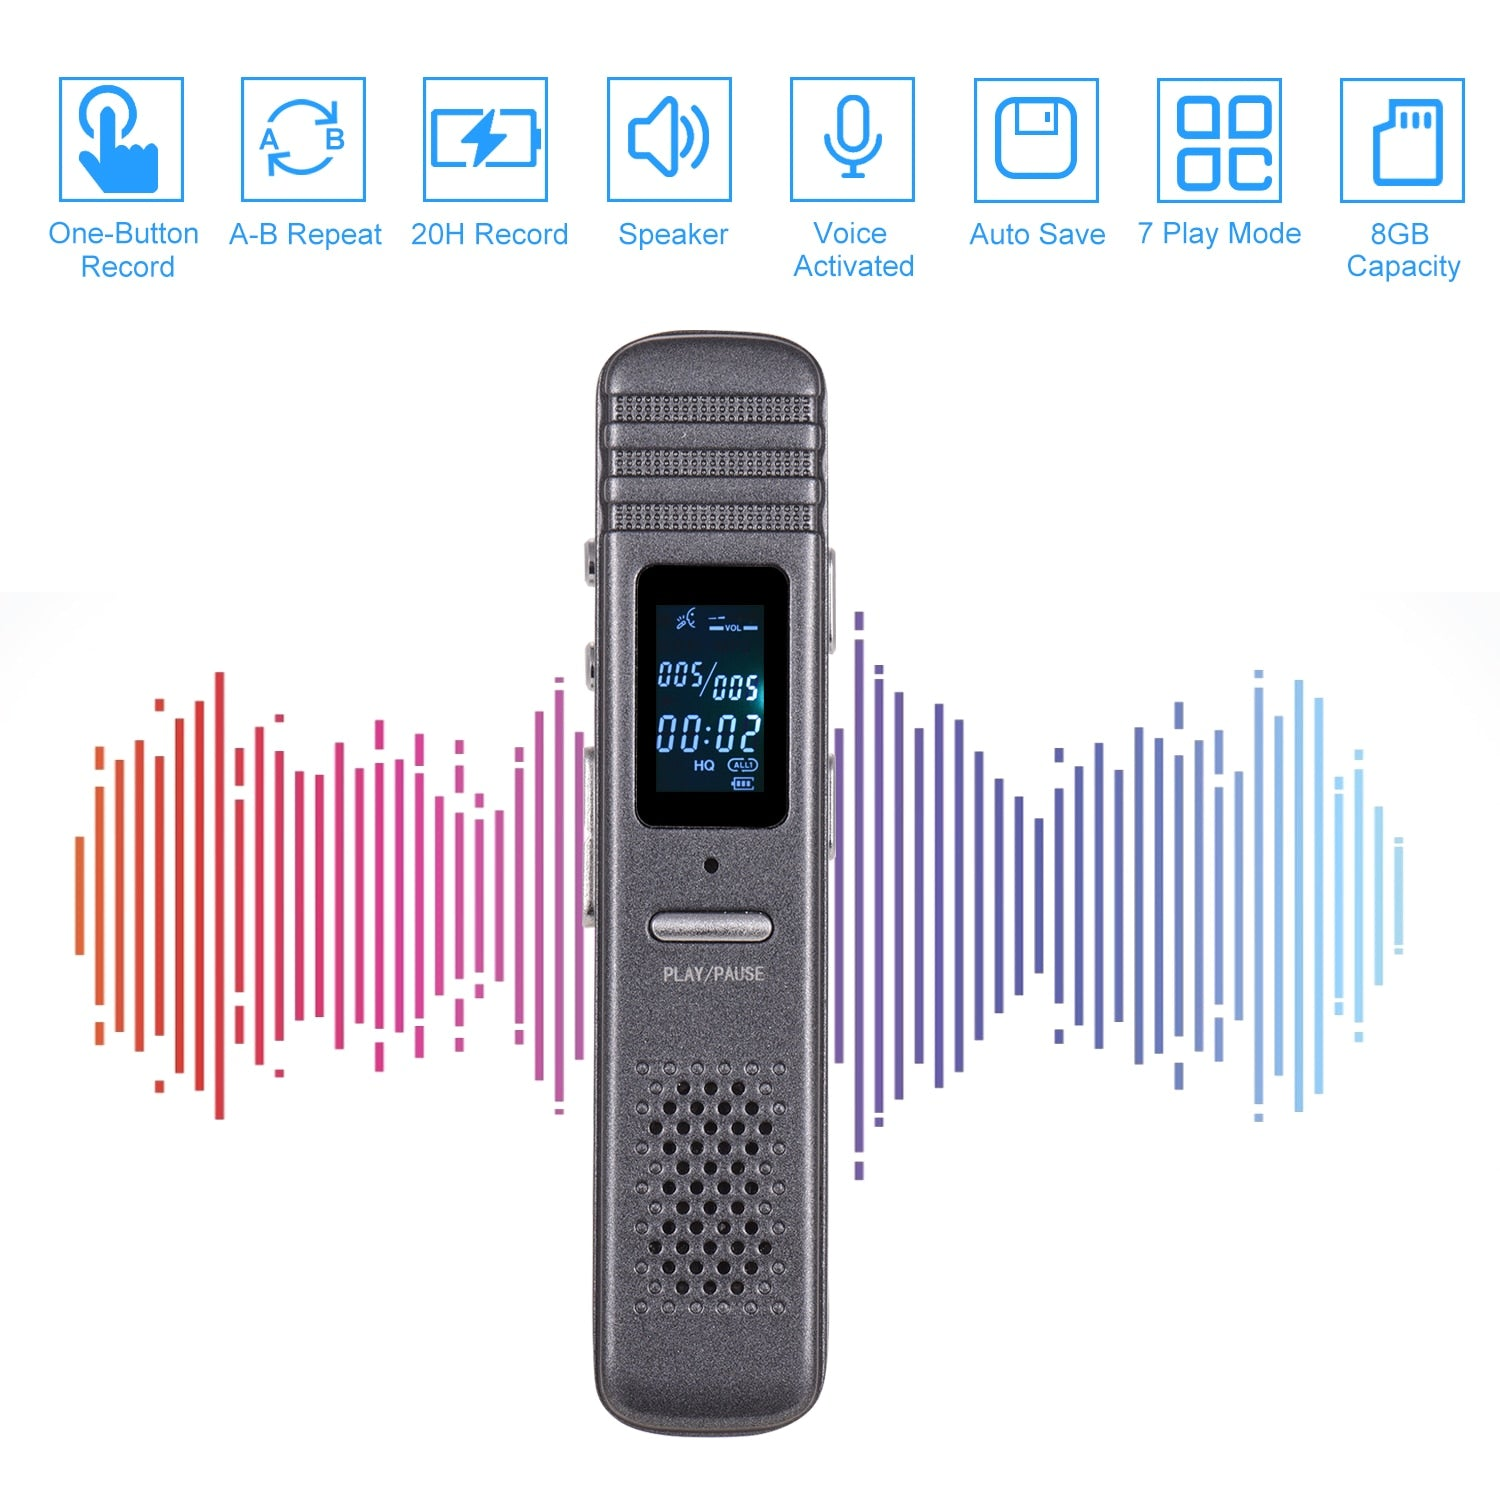 Digital Voice Recorder MP3 Music Player One-Button Recording with Loudspeaker 7 Play Mode with Earphone USB Cable 8GB Capacity